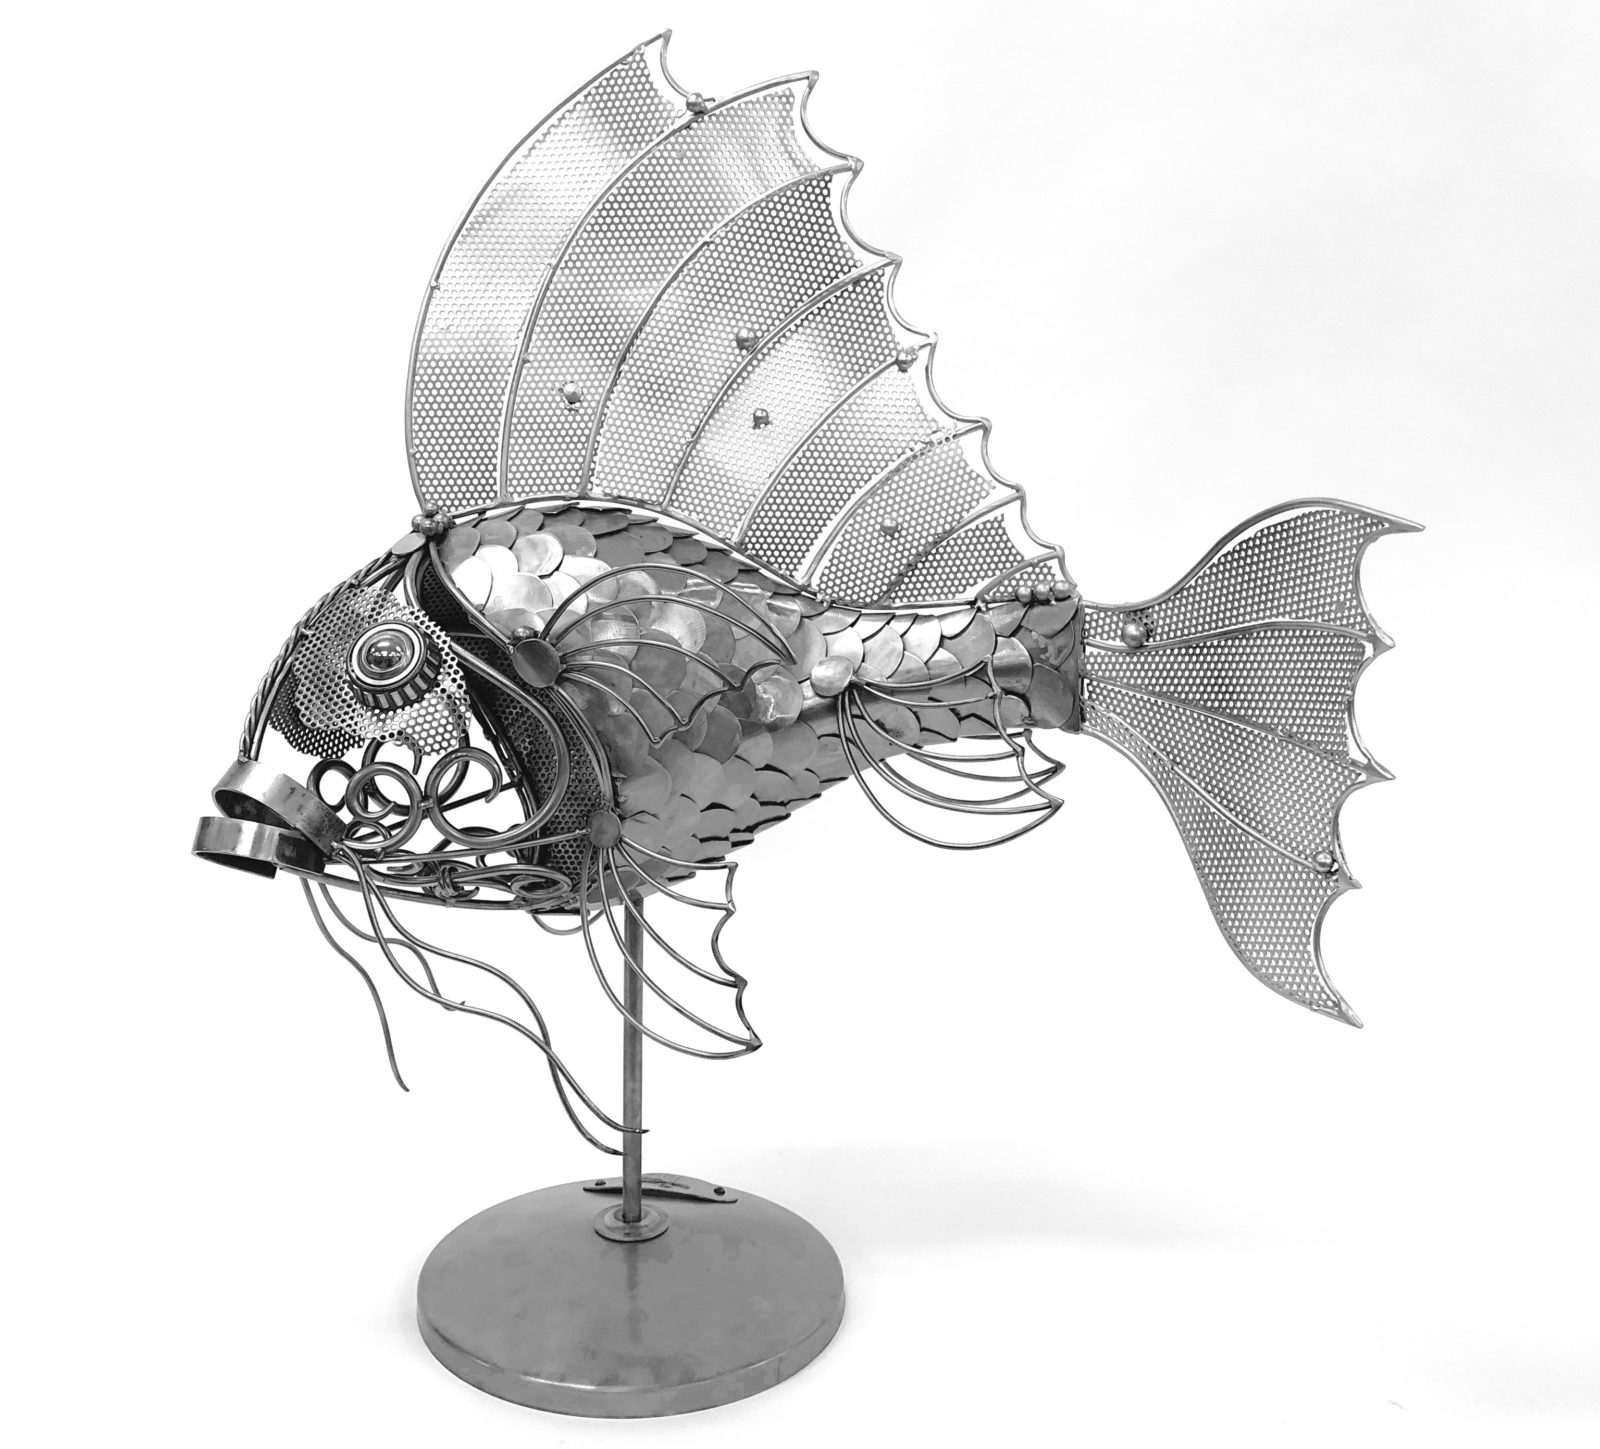 Gold fish metal sculpture